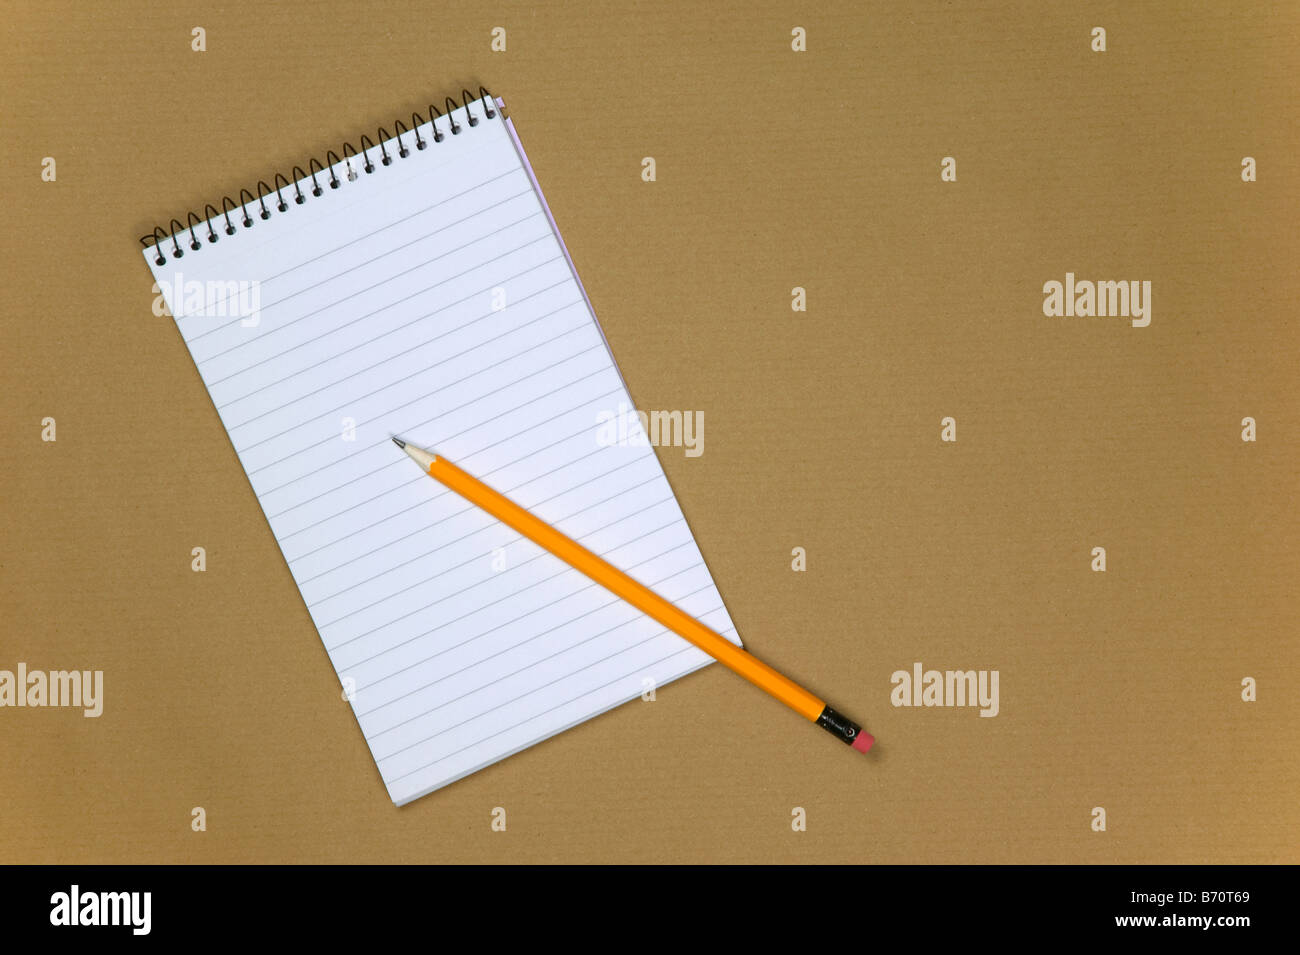 Blank reporters notebook and pencil on a brown paper background - Stock Image